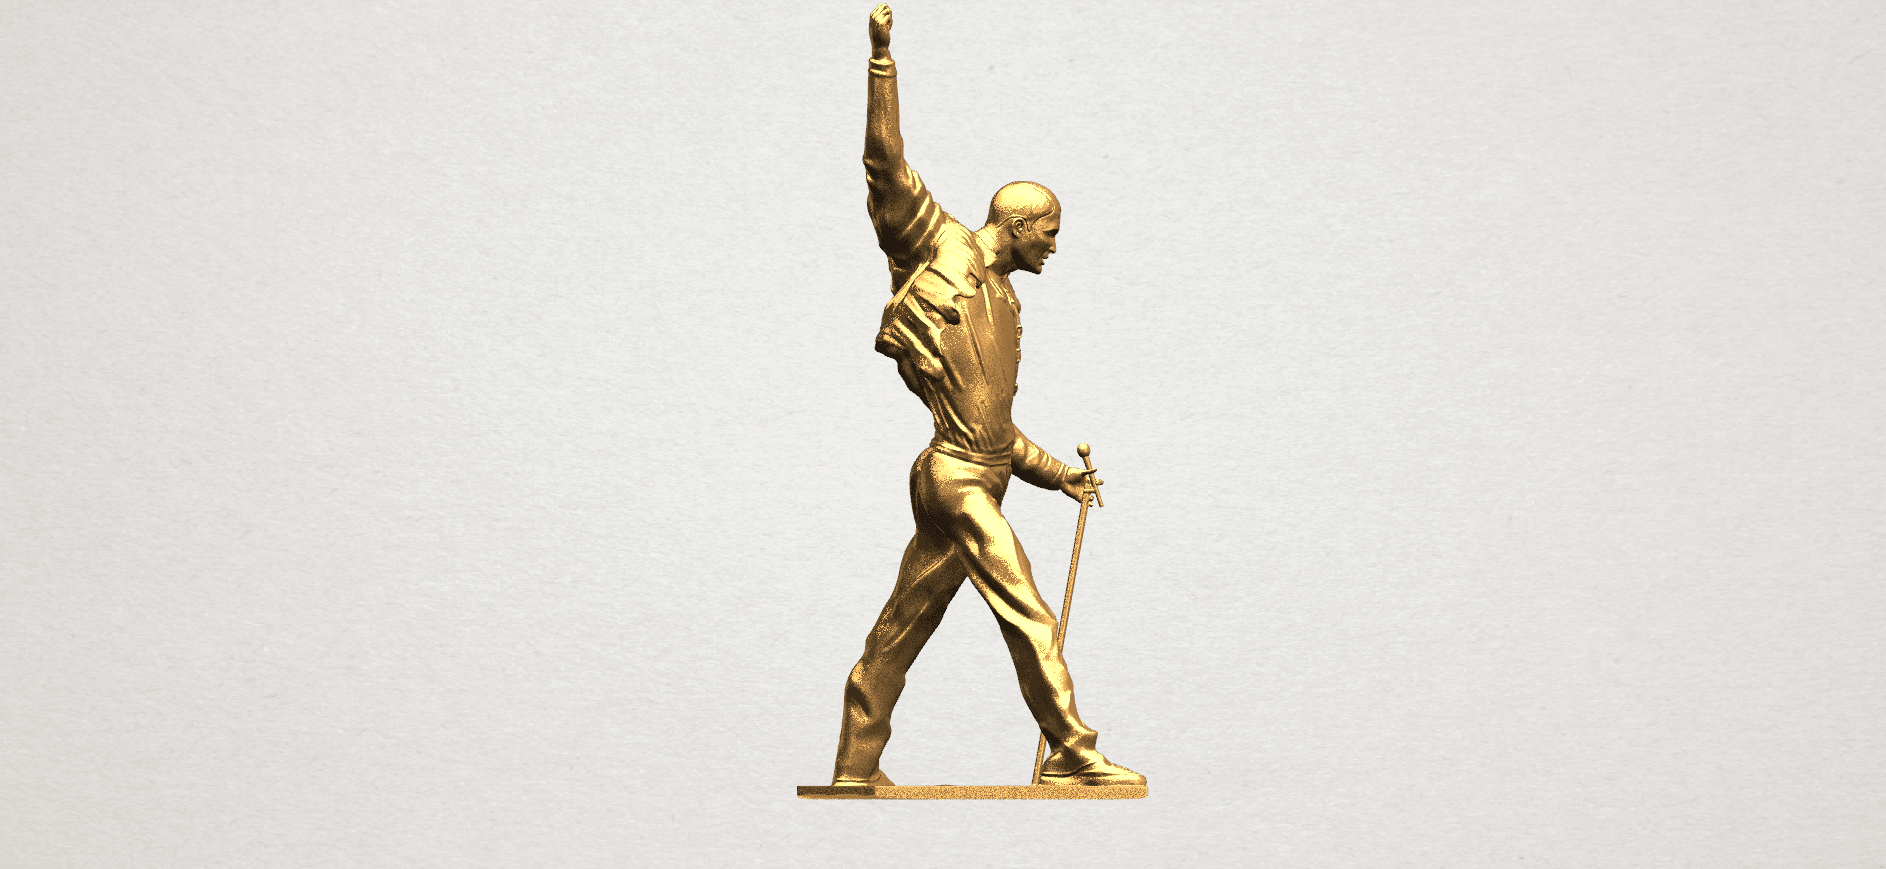 Statue of Freddie Mercury A07.png Download free STL file Statue of Freddie Mercury • 3D printable template, GeorgesNikkei